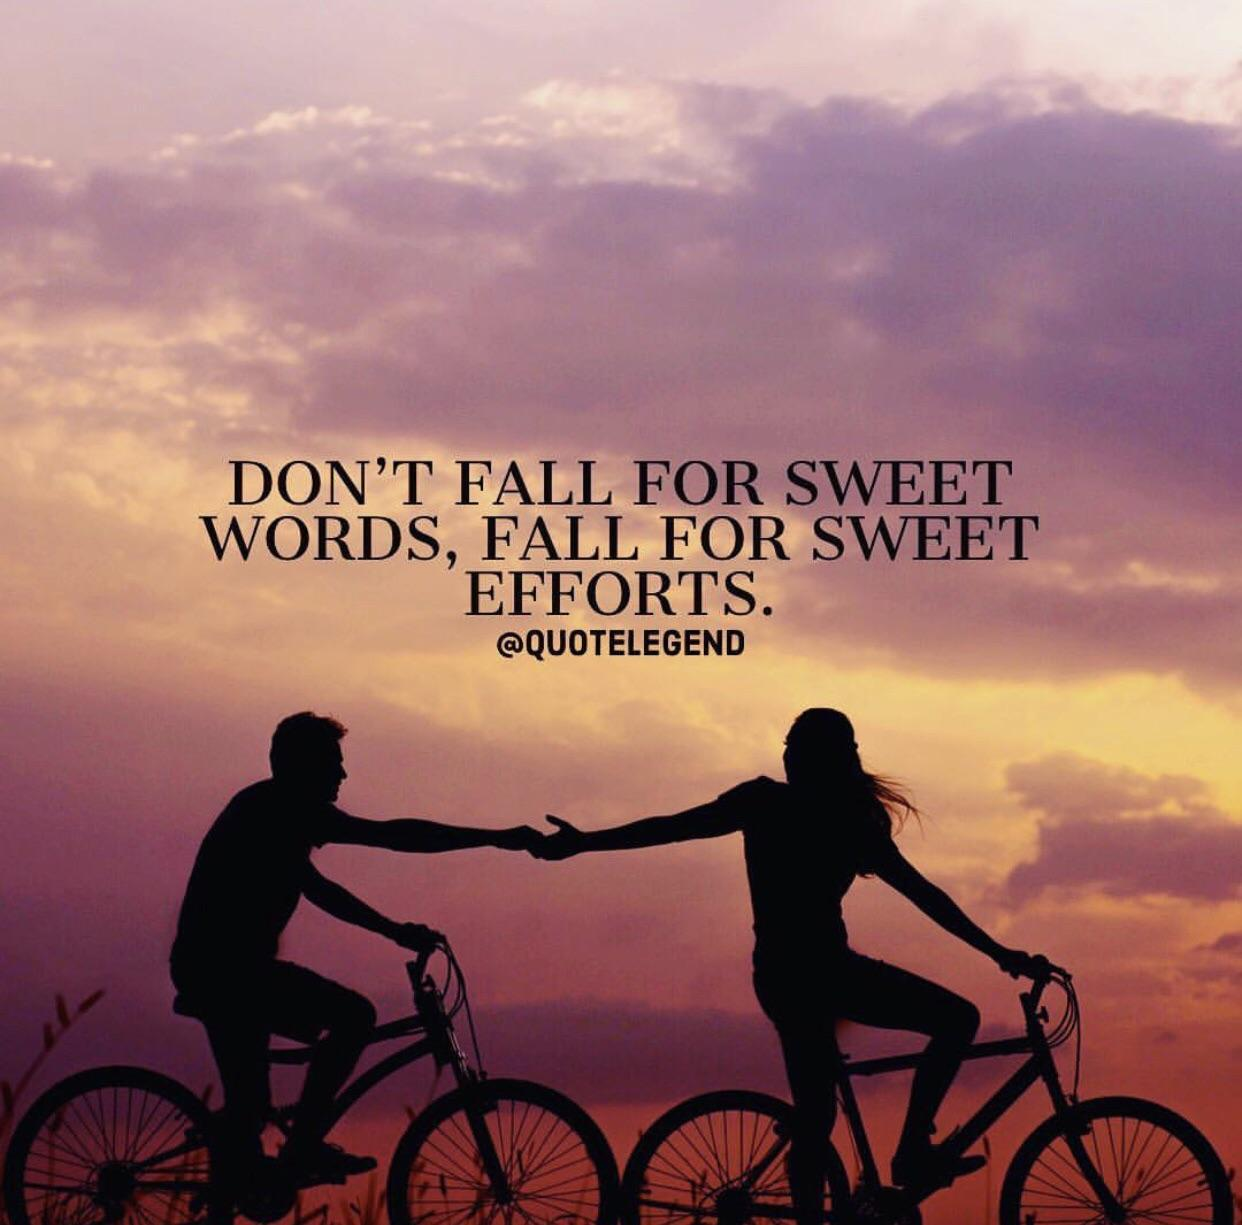 DON'T FALL FOR SWEET WORDS, FALL FOR SWEET EFFORTS. @QUOTELEGEND https://inspirational.ly